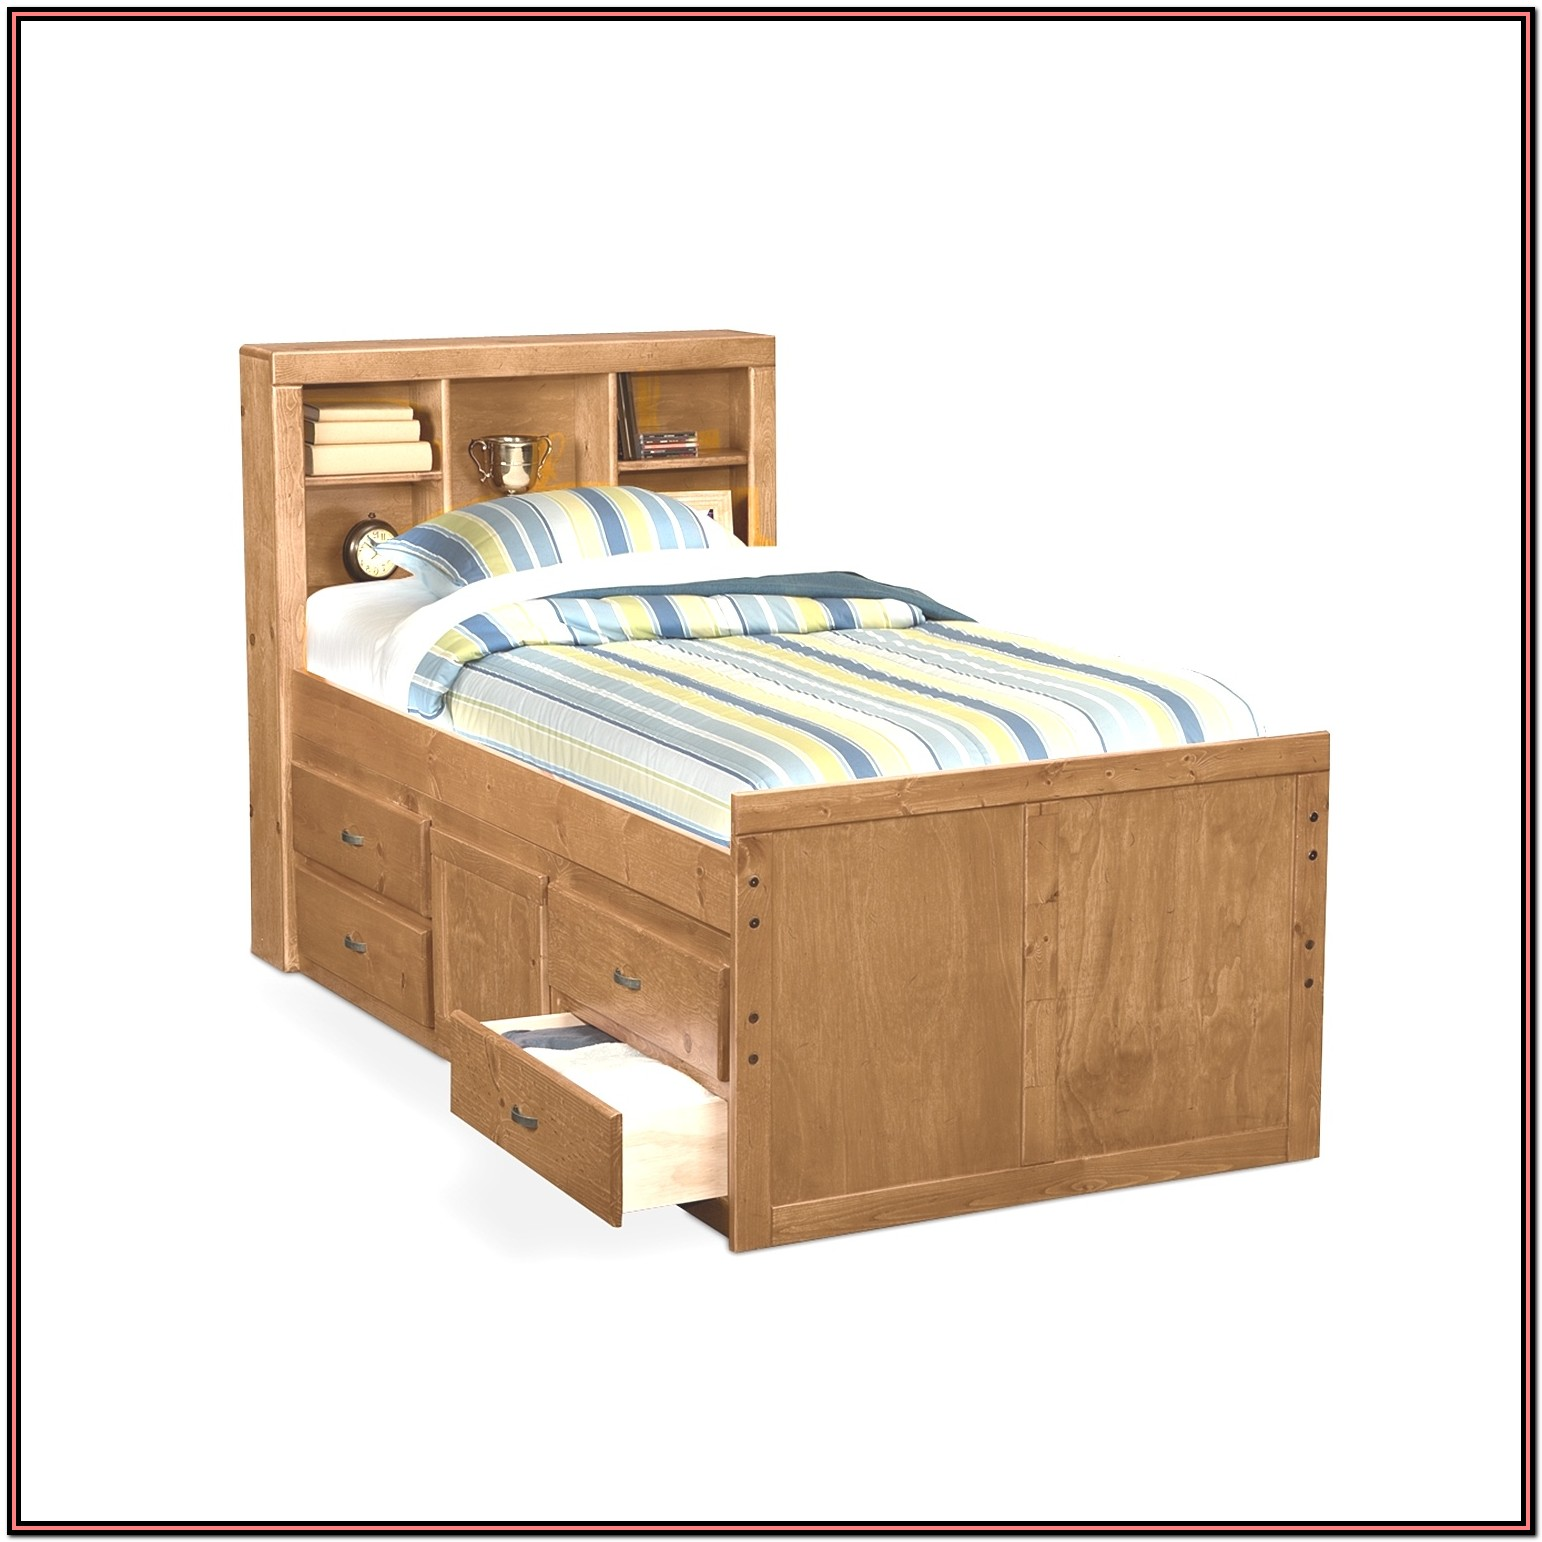 Platform Bed With Drawers Design Plans